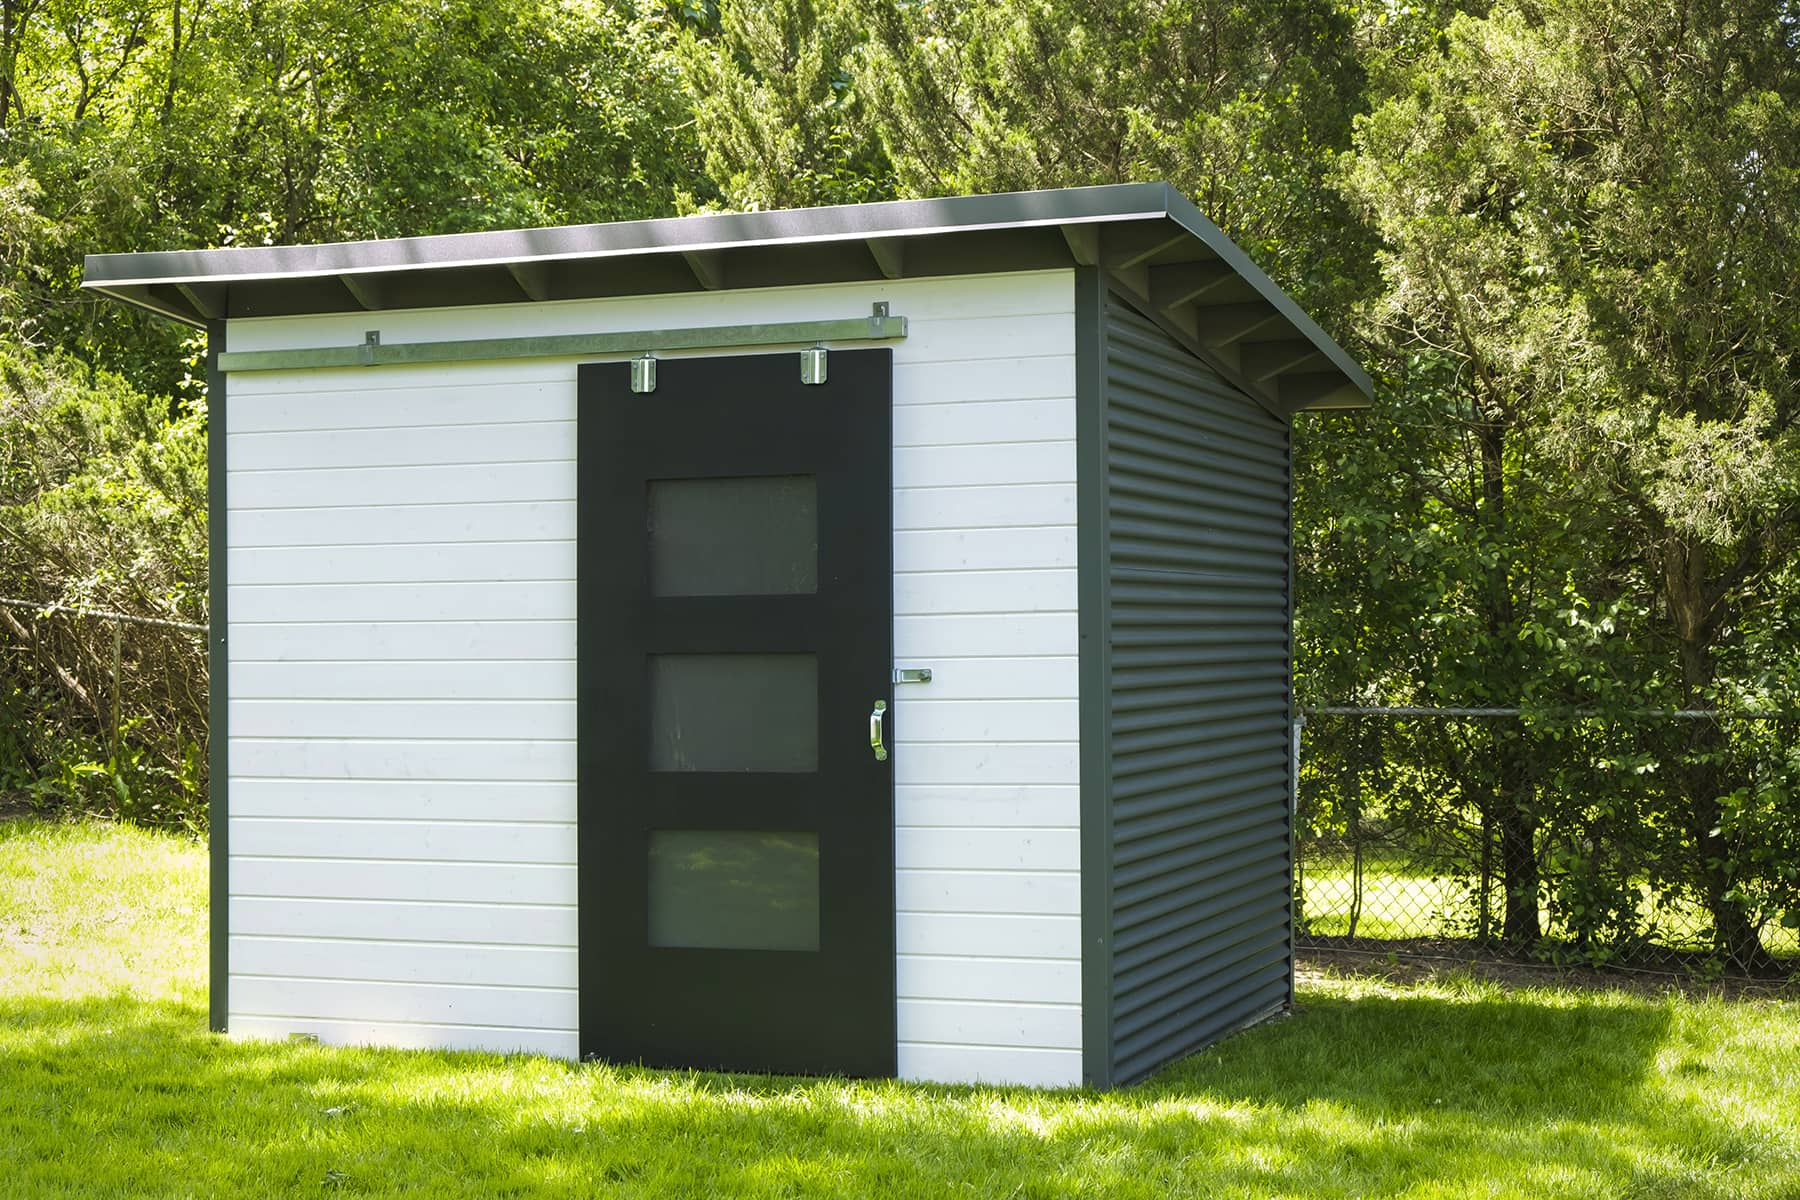 10' x 8' Essential Shed with White Satin Stain and Charcoal Steel